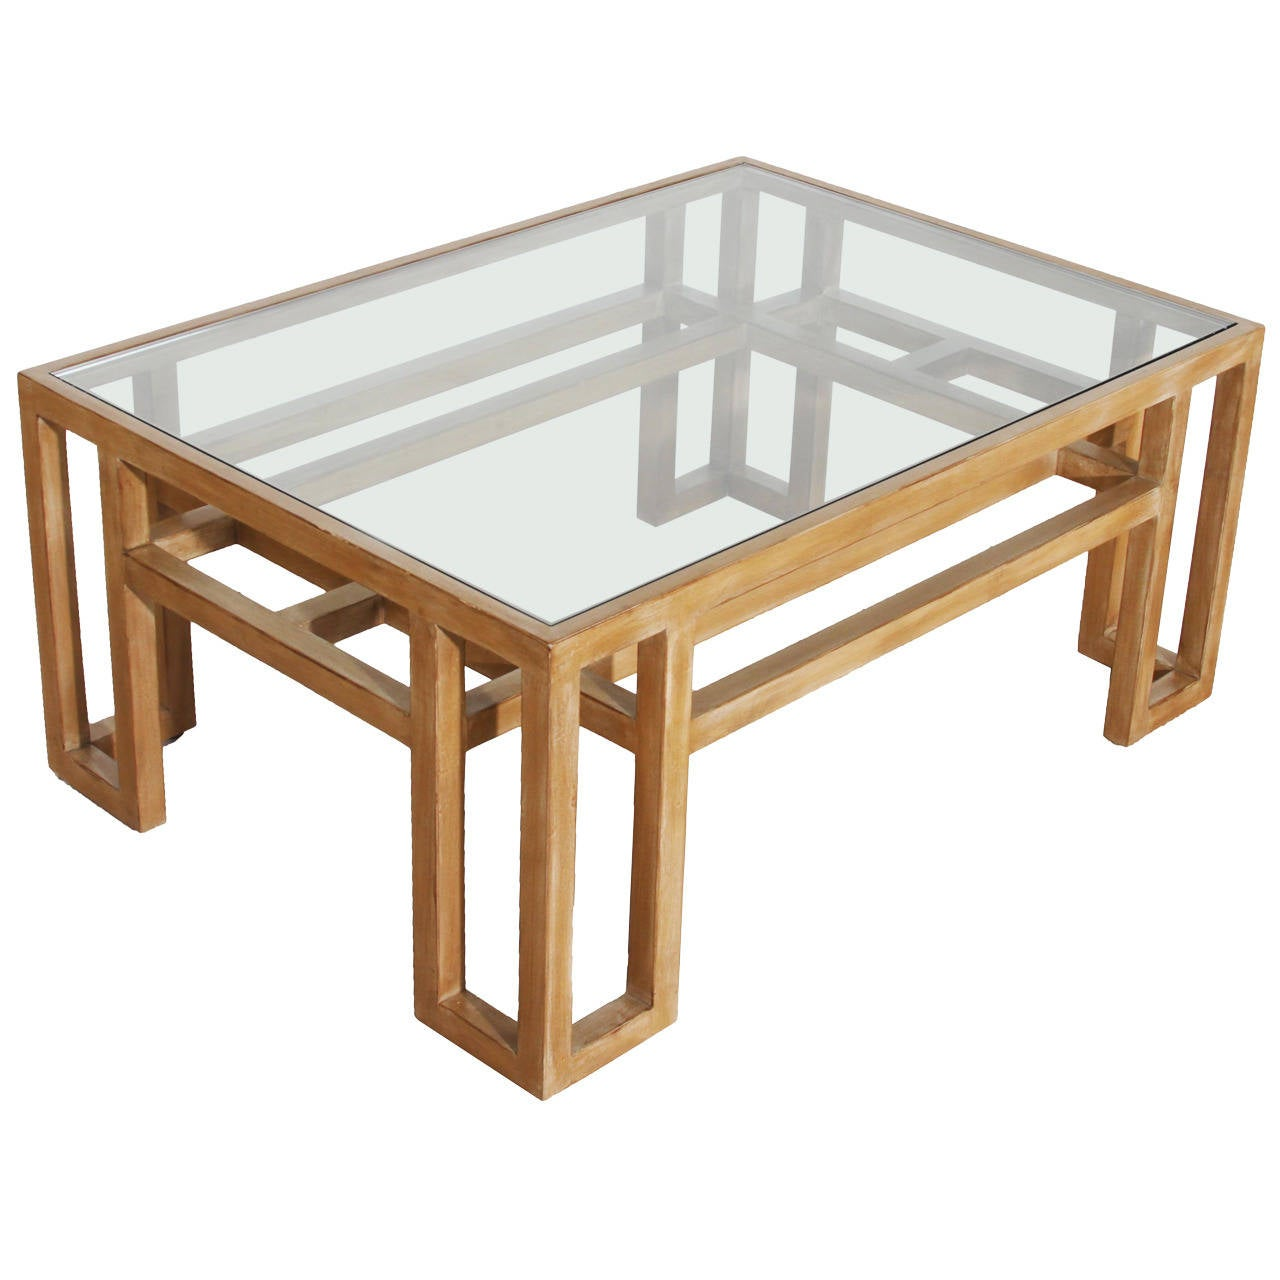 Vintage wood coffee table with glass top for sale at 1stdibs Coffee table antique